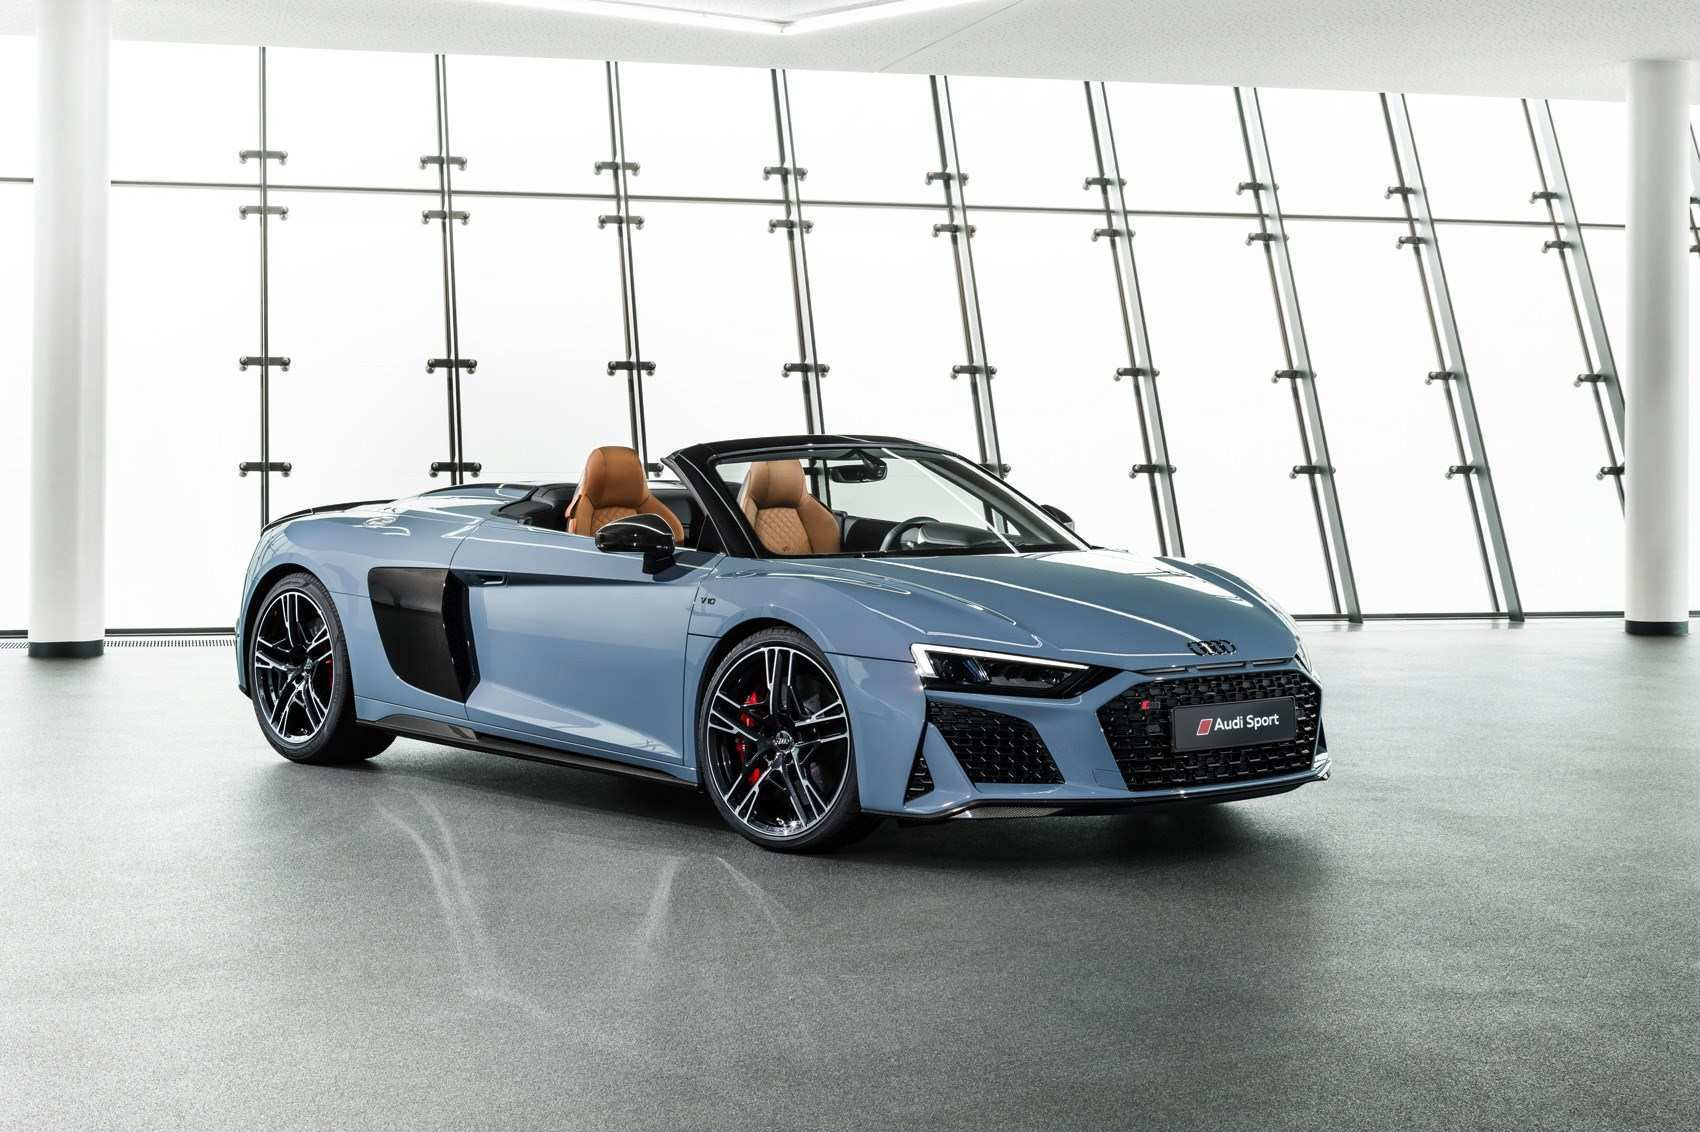 69 Concept of The R8 Audi 2019 Review And Price Exterior and Interior with The R8 Audi 2019 Review And Price